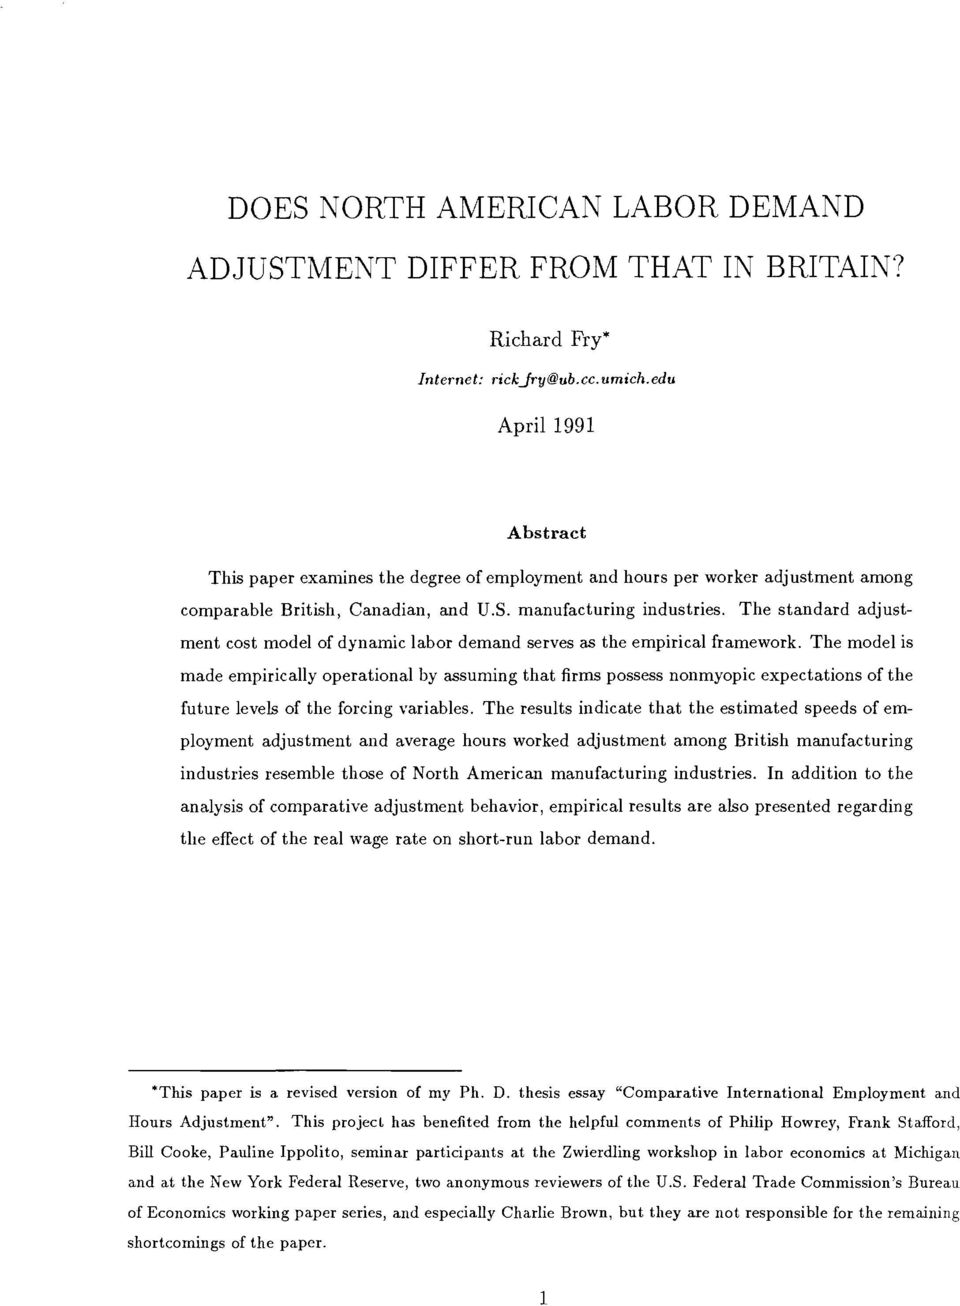 The standard adjustment cost model of dynamic labor demand serves as the empirical framework.